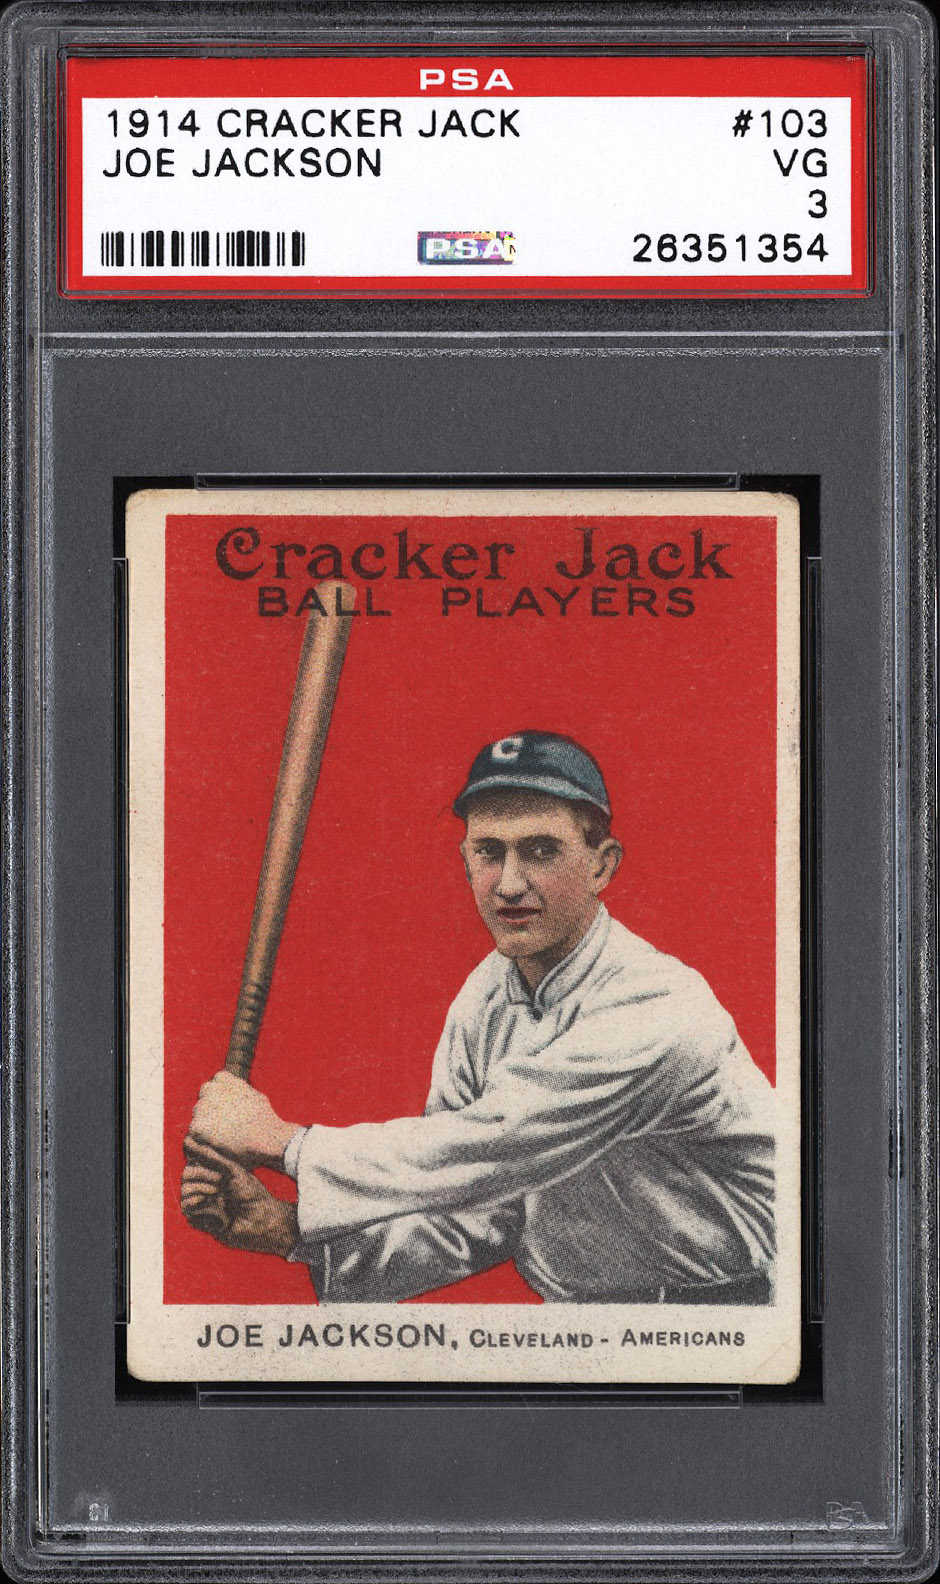 """STOCKTON FIND"" OF RARE CRACKER JACK BASEBALL CARDS TO BE FEATURED IN LOVE OF THE GAME FALL AUCTION"